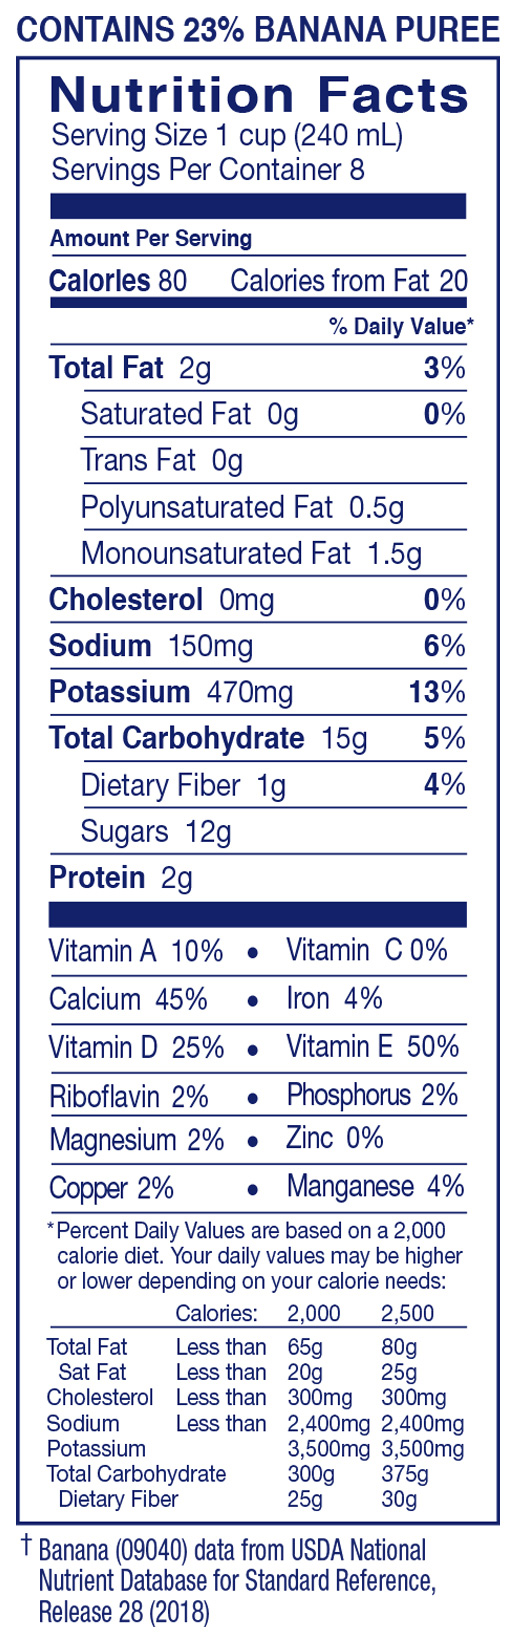 Almond Breeze, Almondmilk Blended With Real Bananas Nutrition Facts